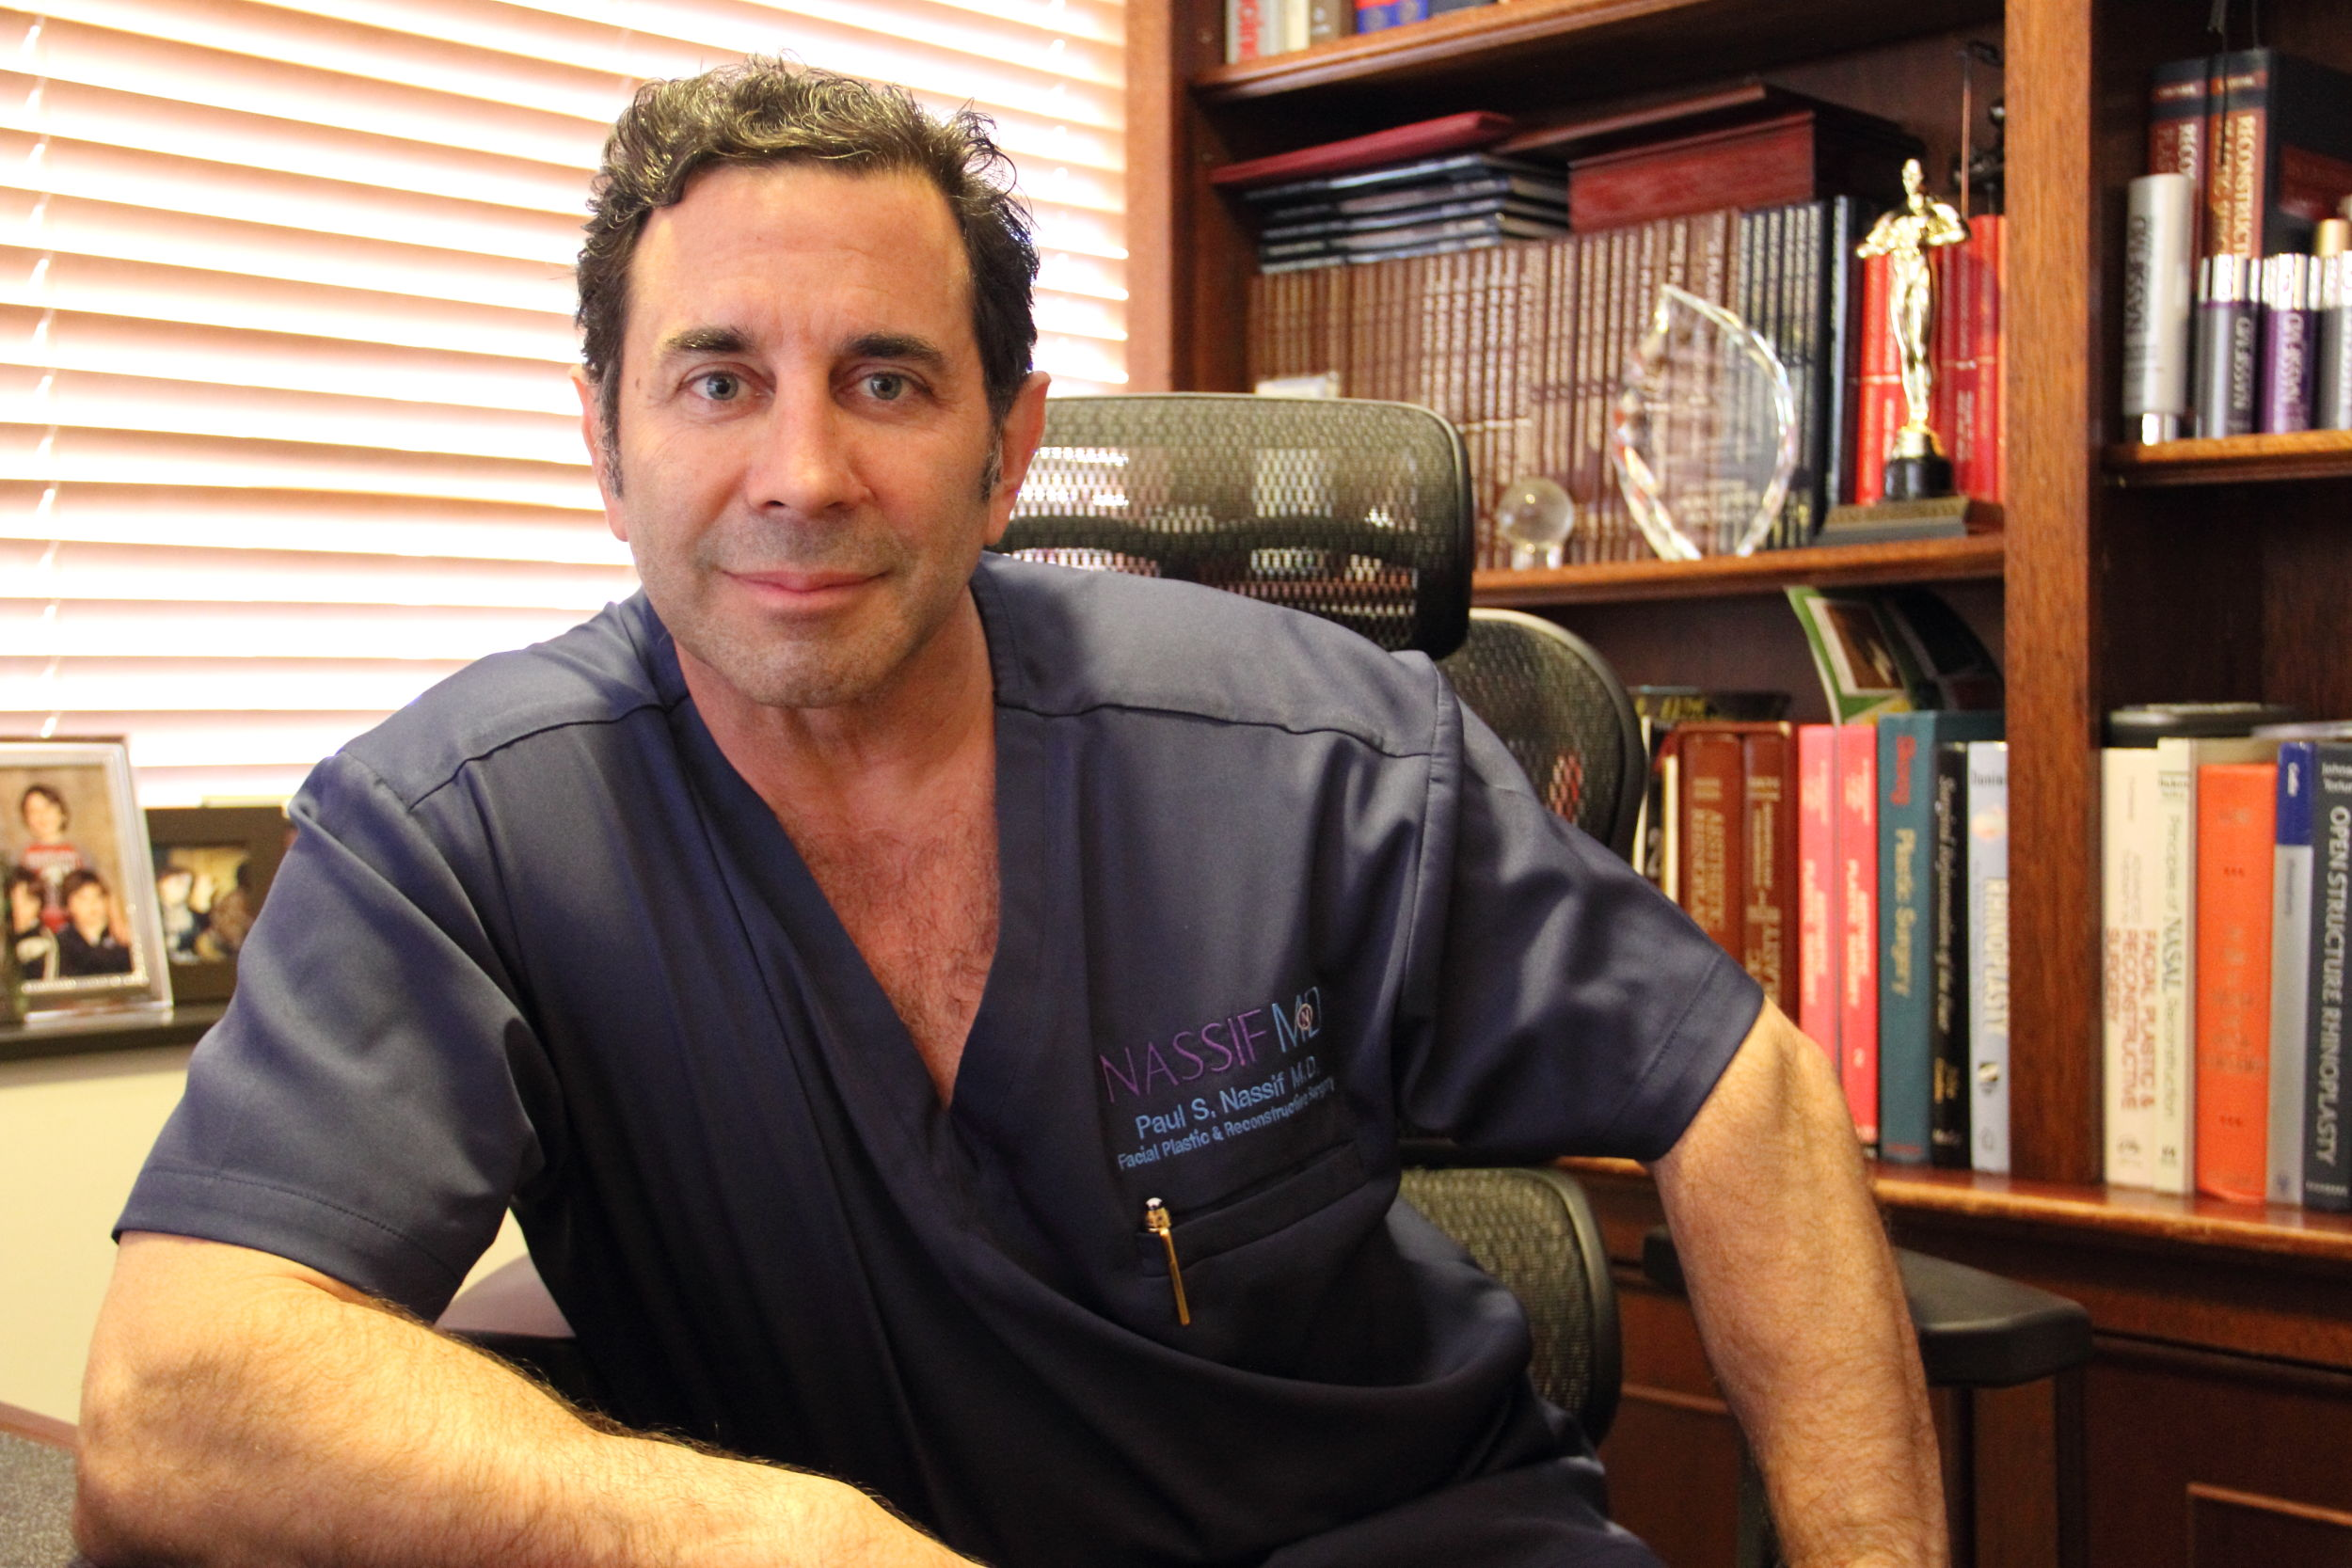 Dr. Paul Nassif interview